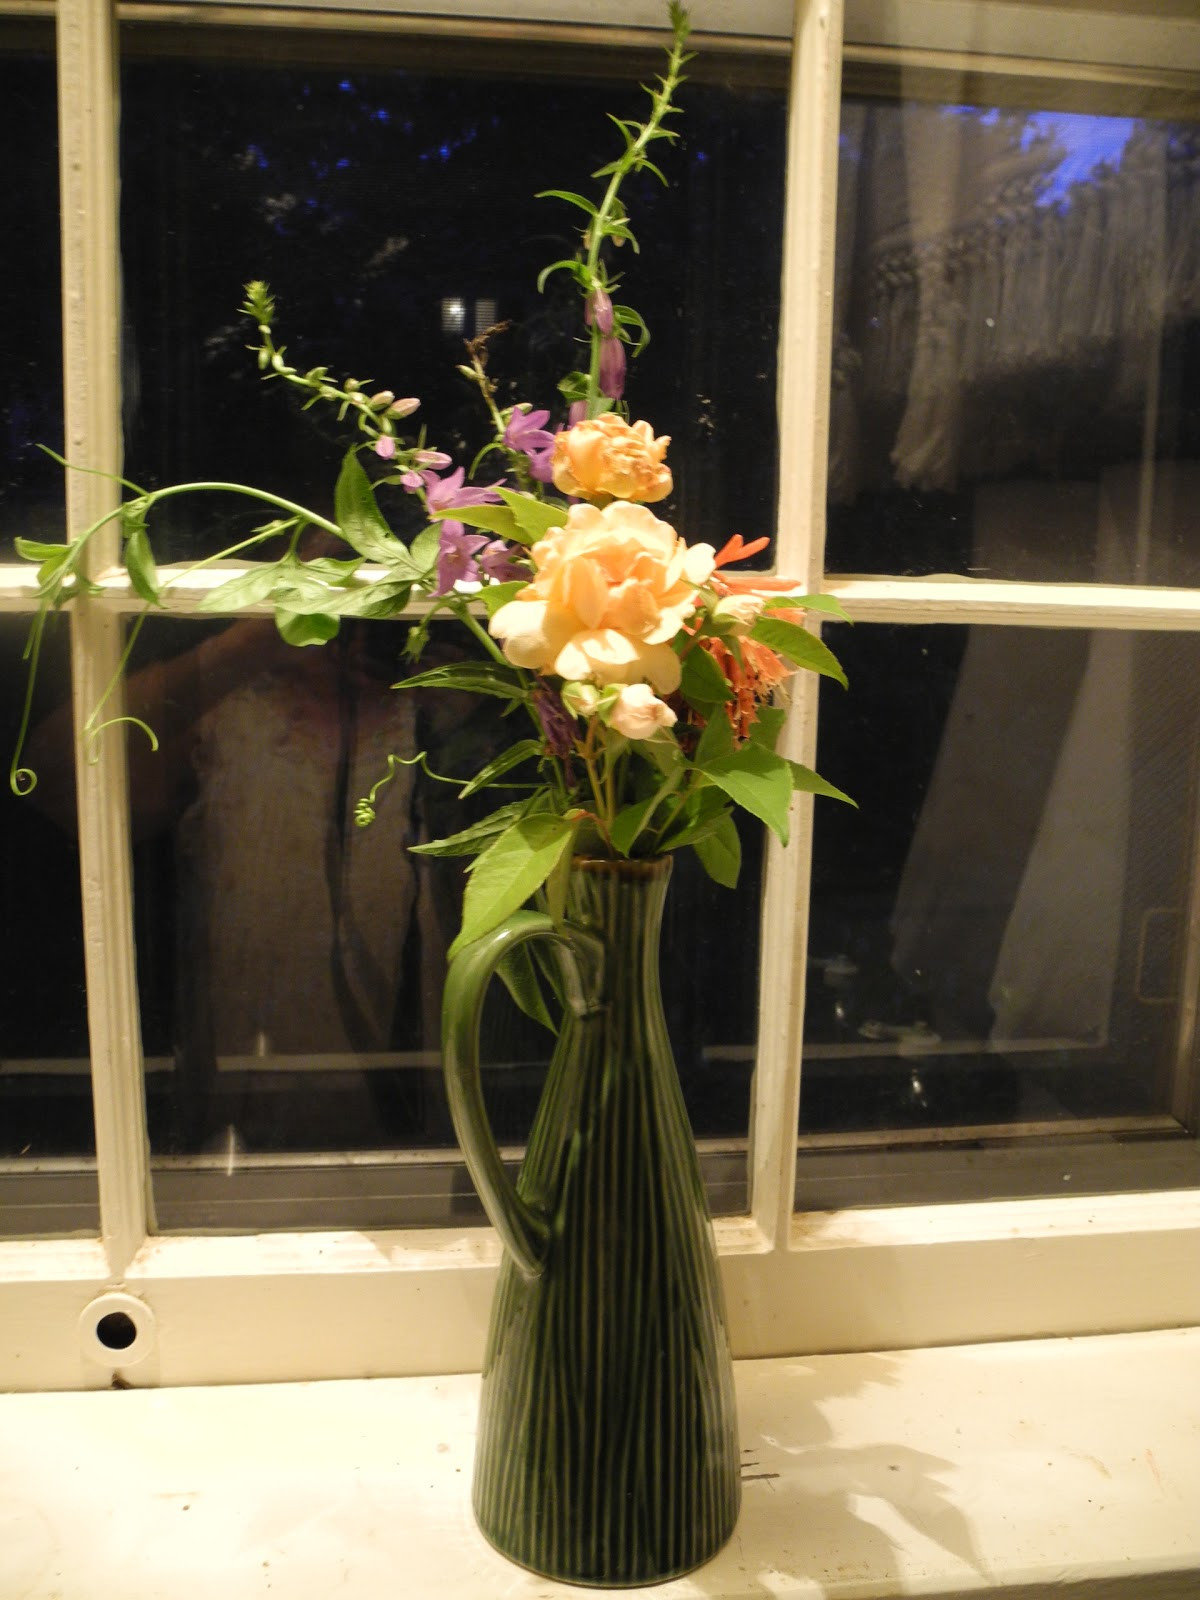 flower arrangements for tall narrow vases of windowsill arranging june 20 2011 with this photo is our of focus and the colors are off but at least you can see the whole vase photo taken afte